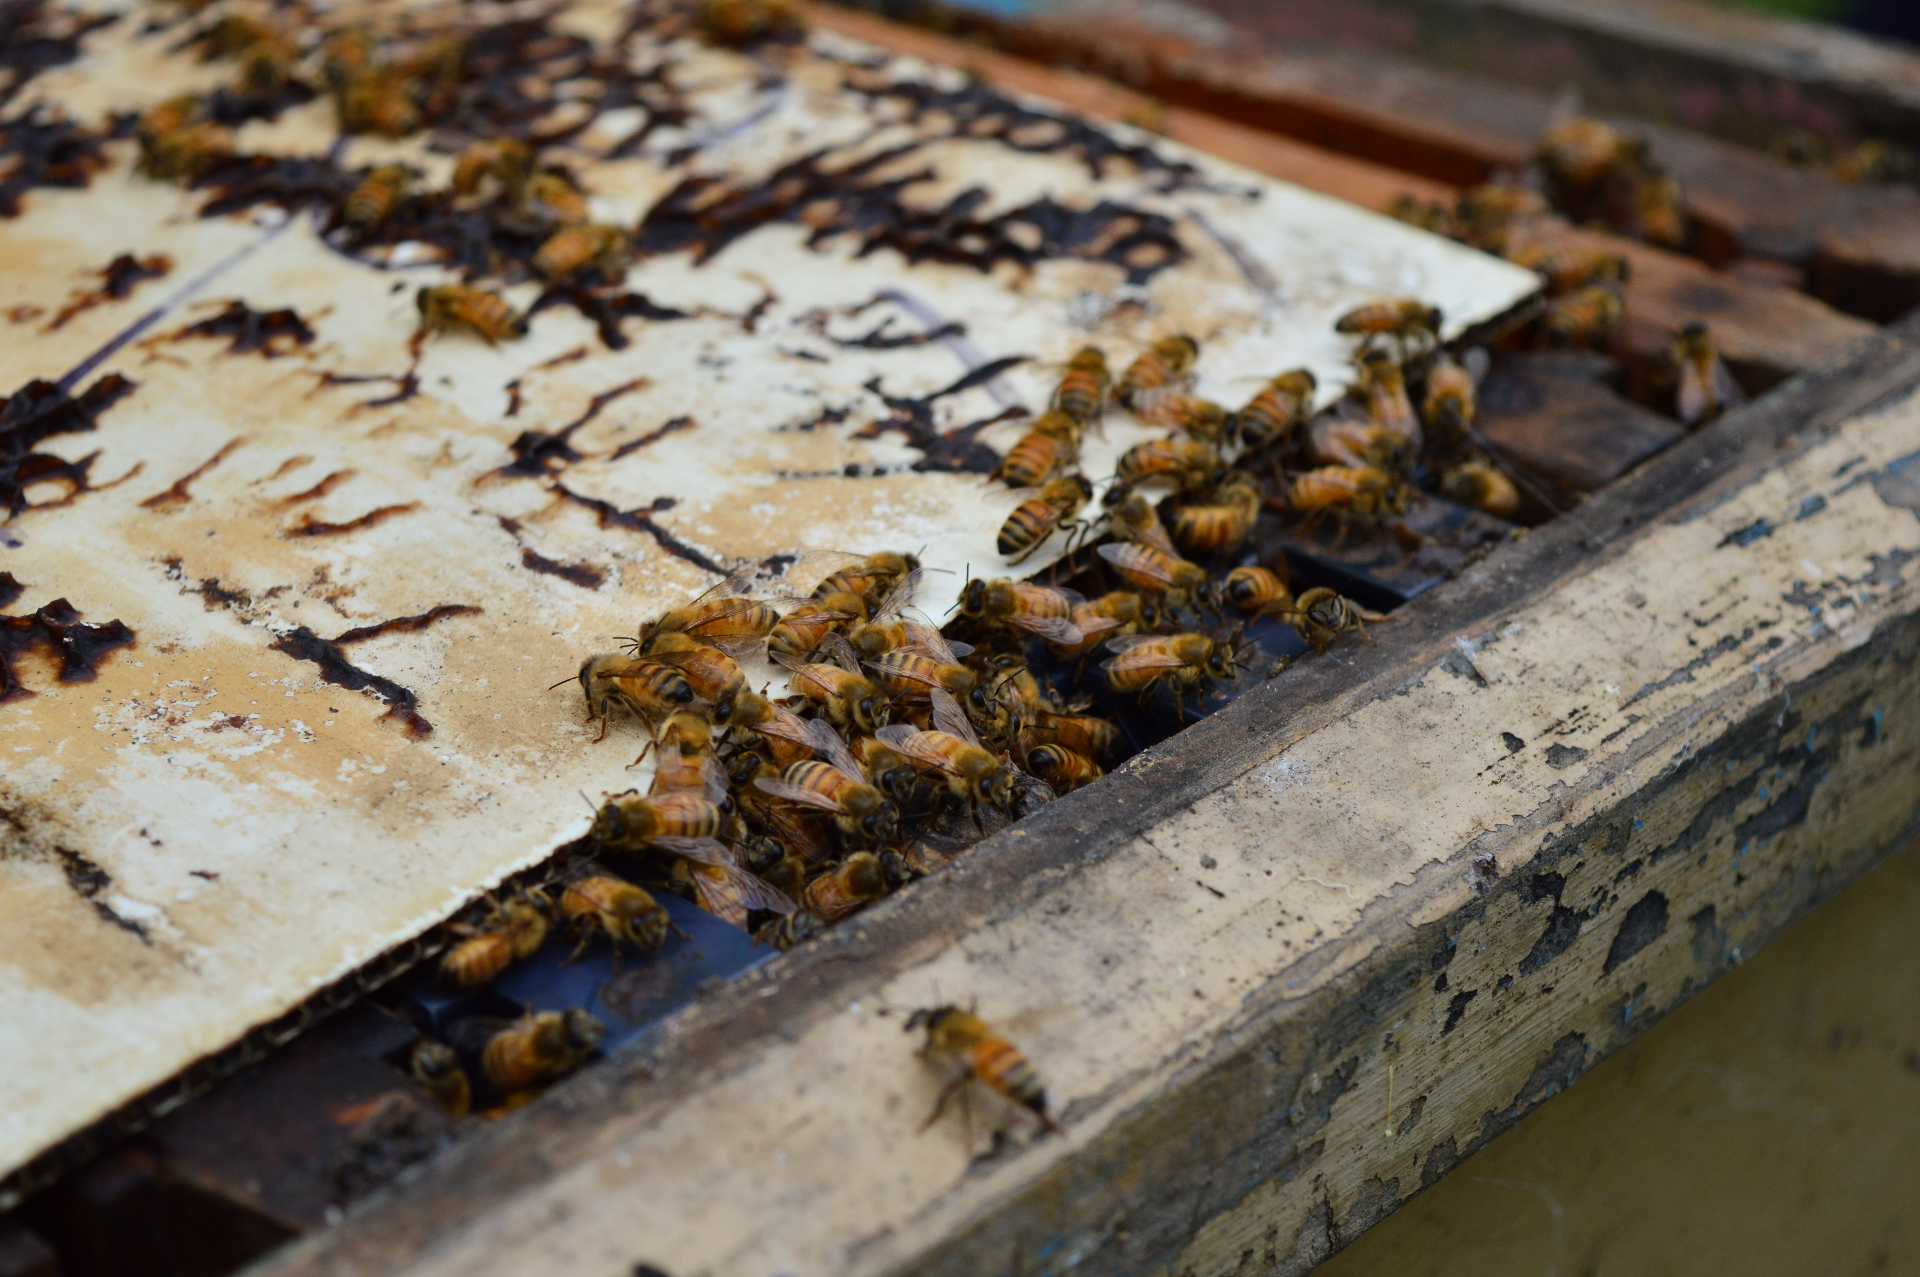 bees at work links